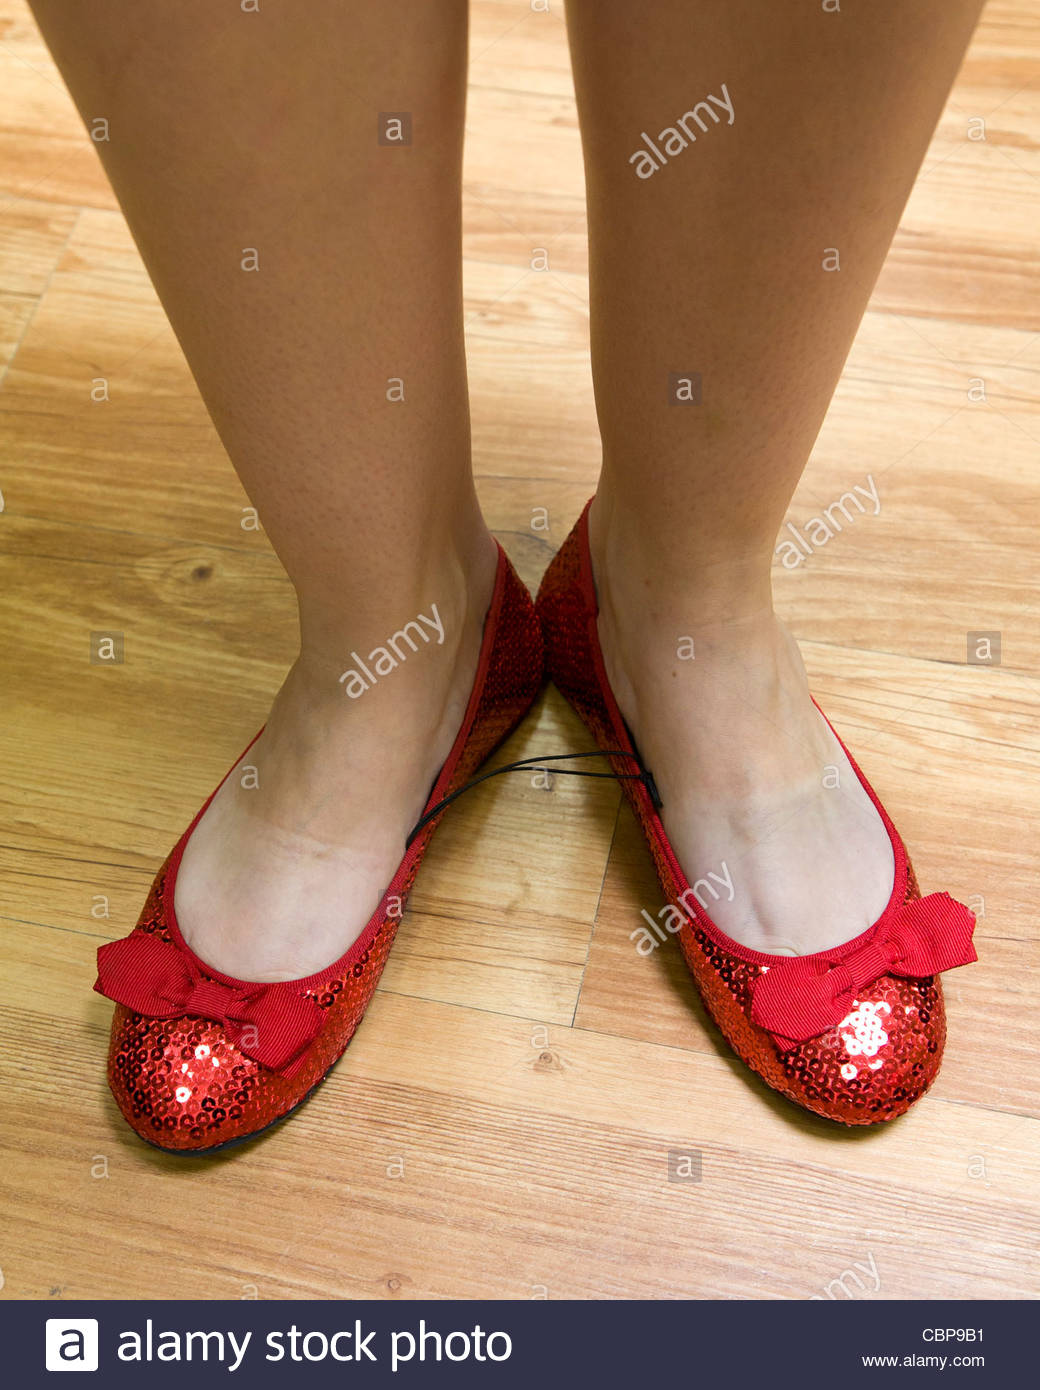 bfb54c13b13 A woman s feet with red ruby slippers Stock Photo  41672261 - Alamy